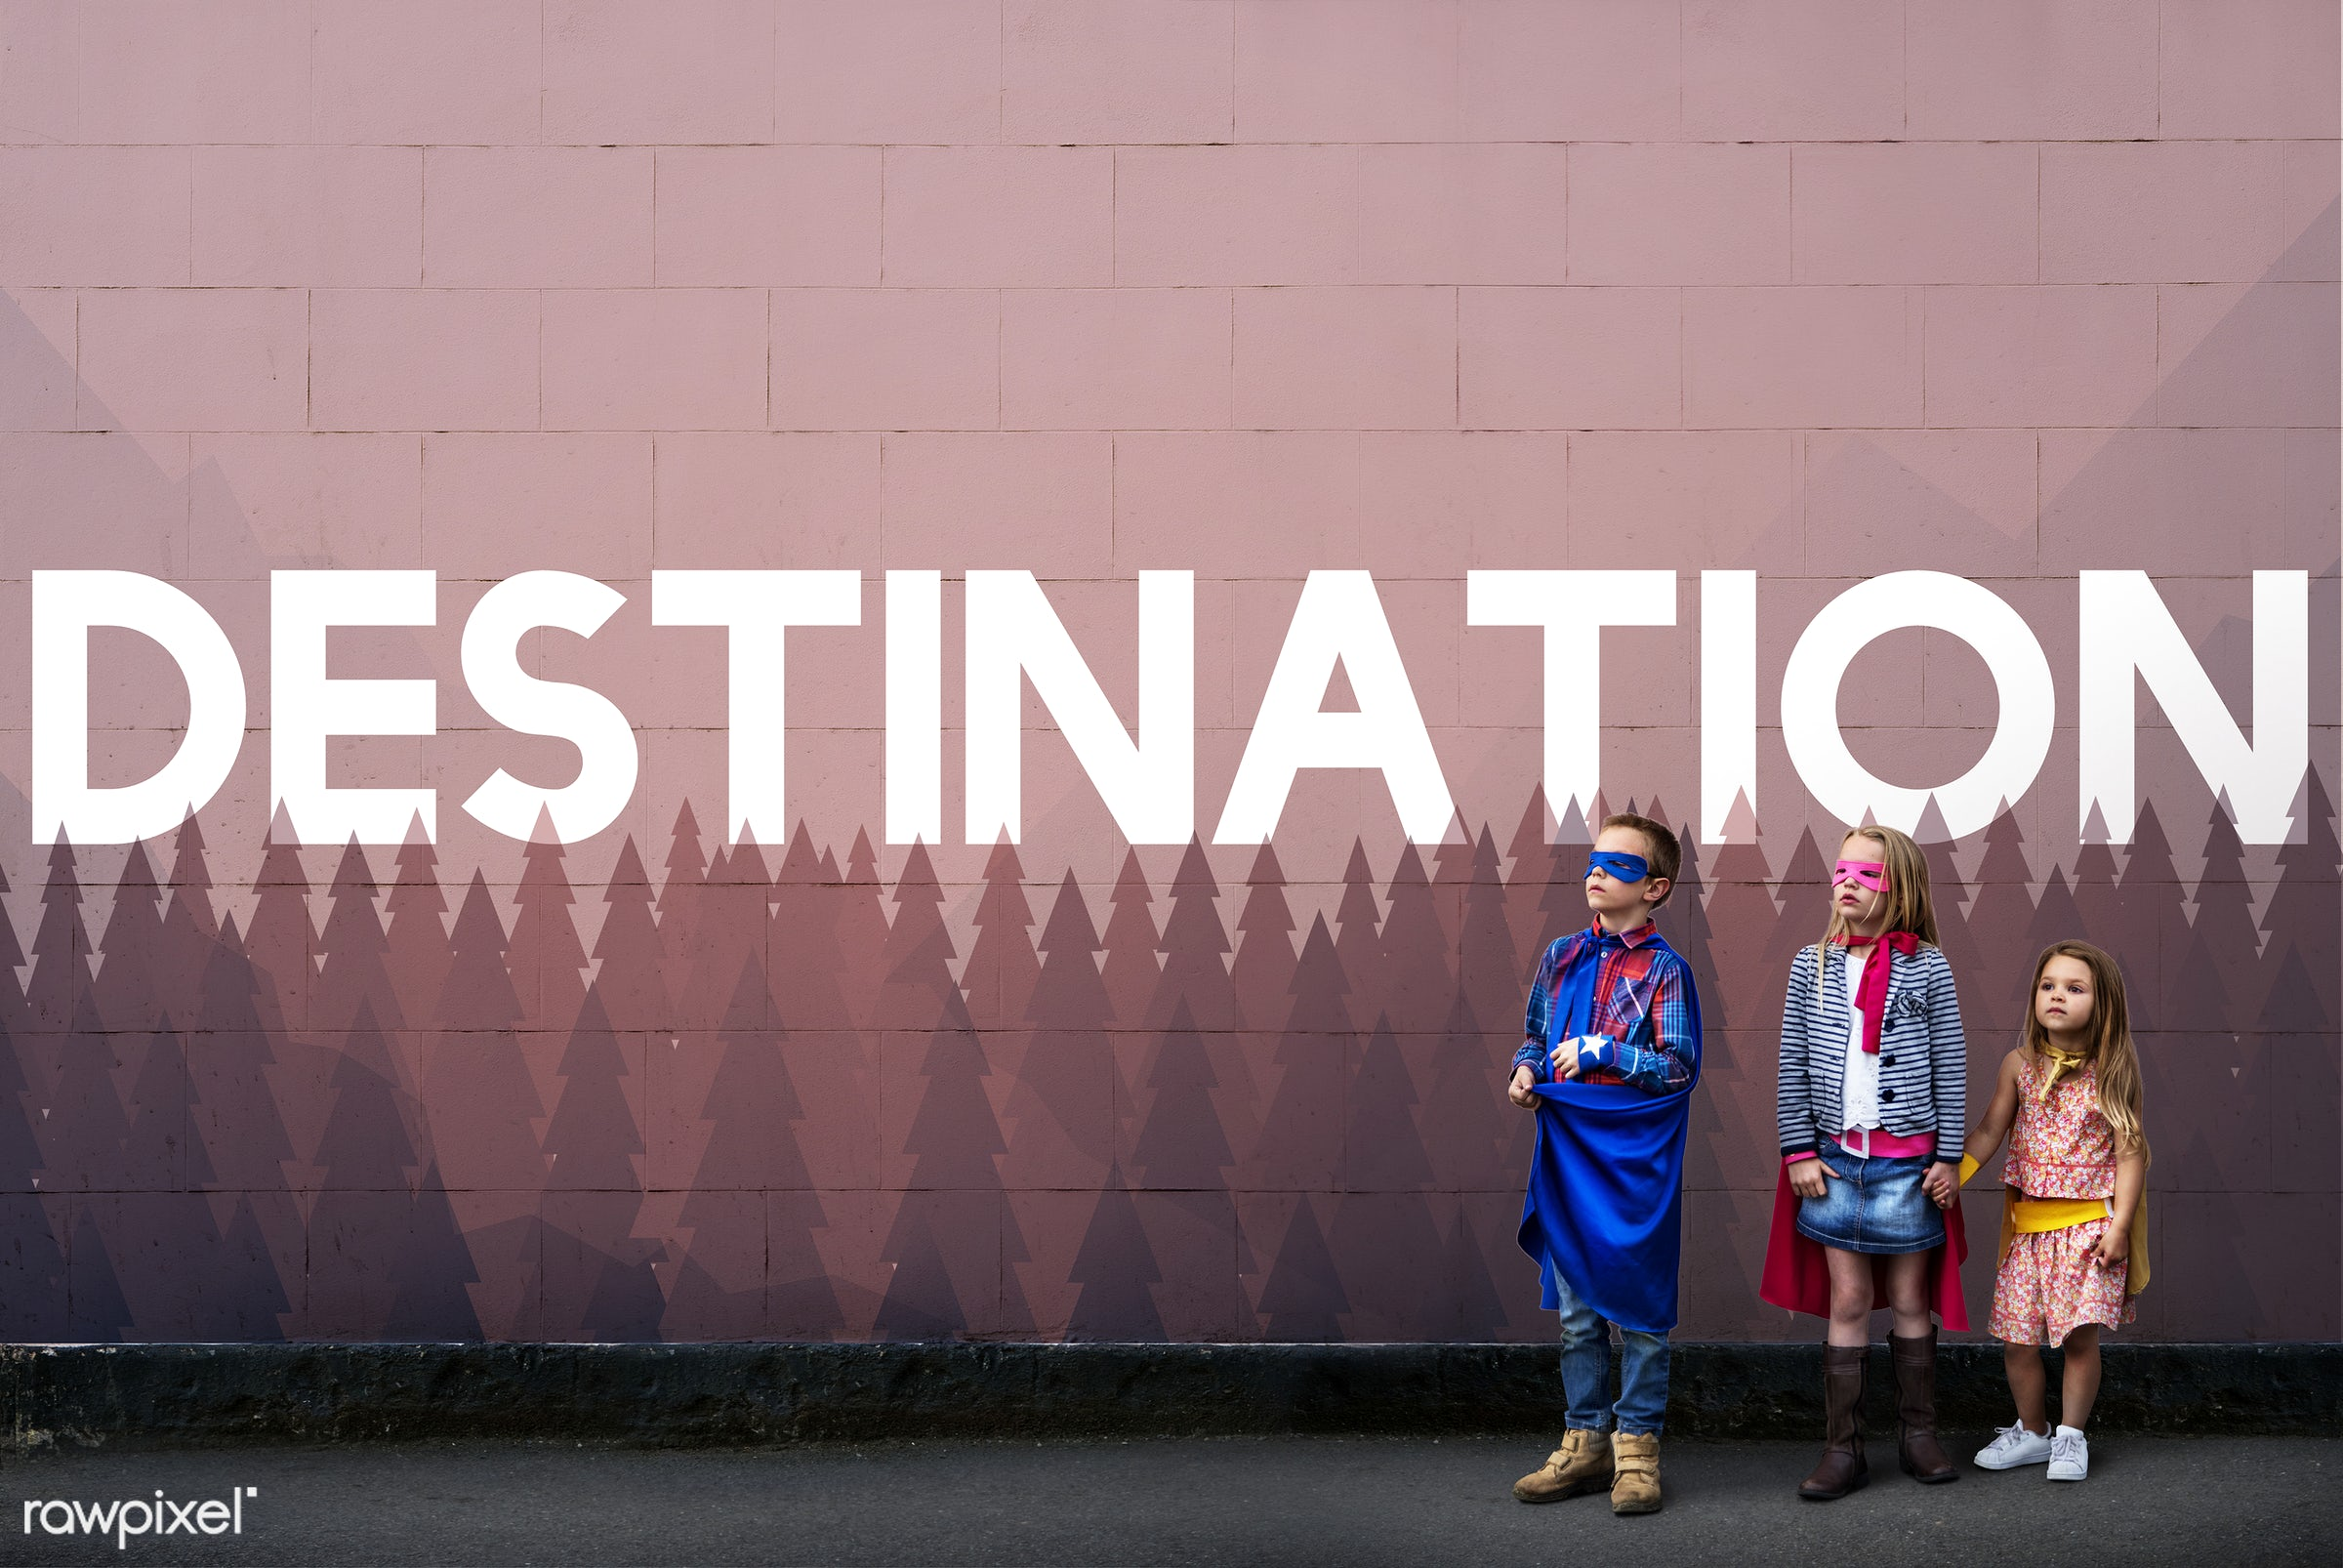 adventure, boy, brave, brother, costume, destination, discovery, dressed up, environment, excursion, experience, exploration...